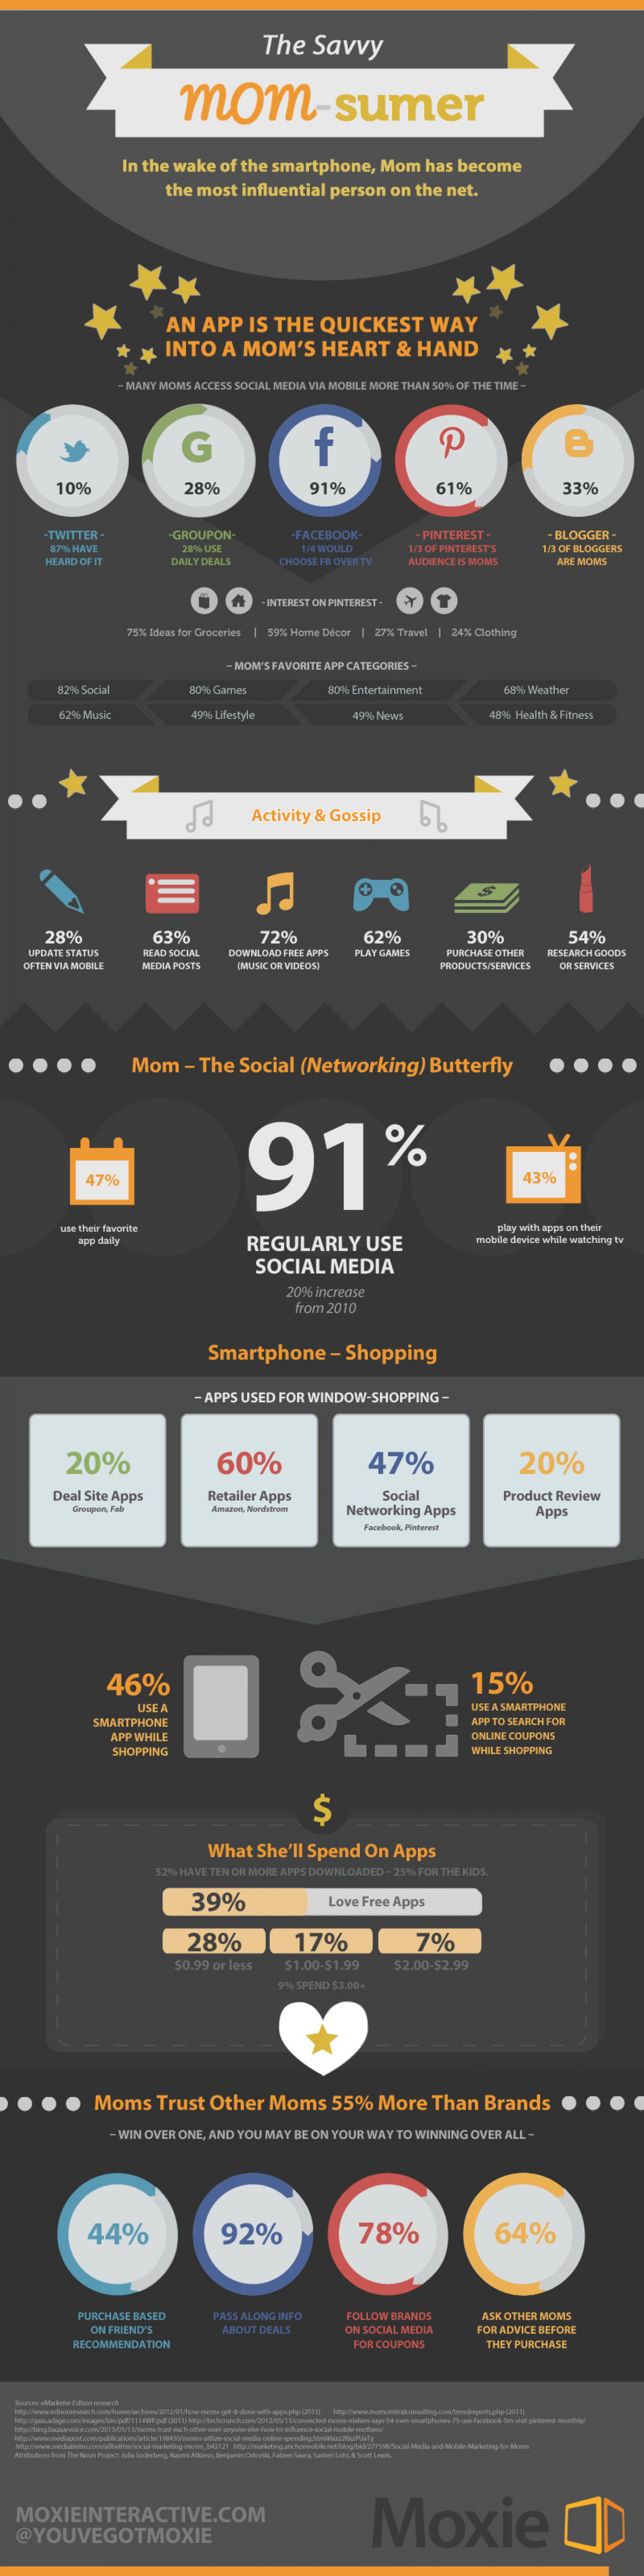 The Savvy Mom-sumer Infographic